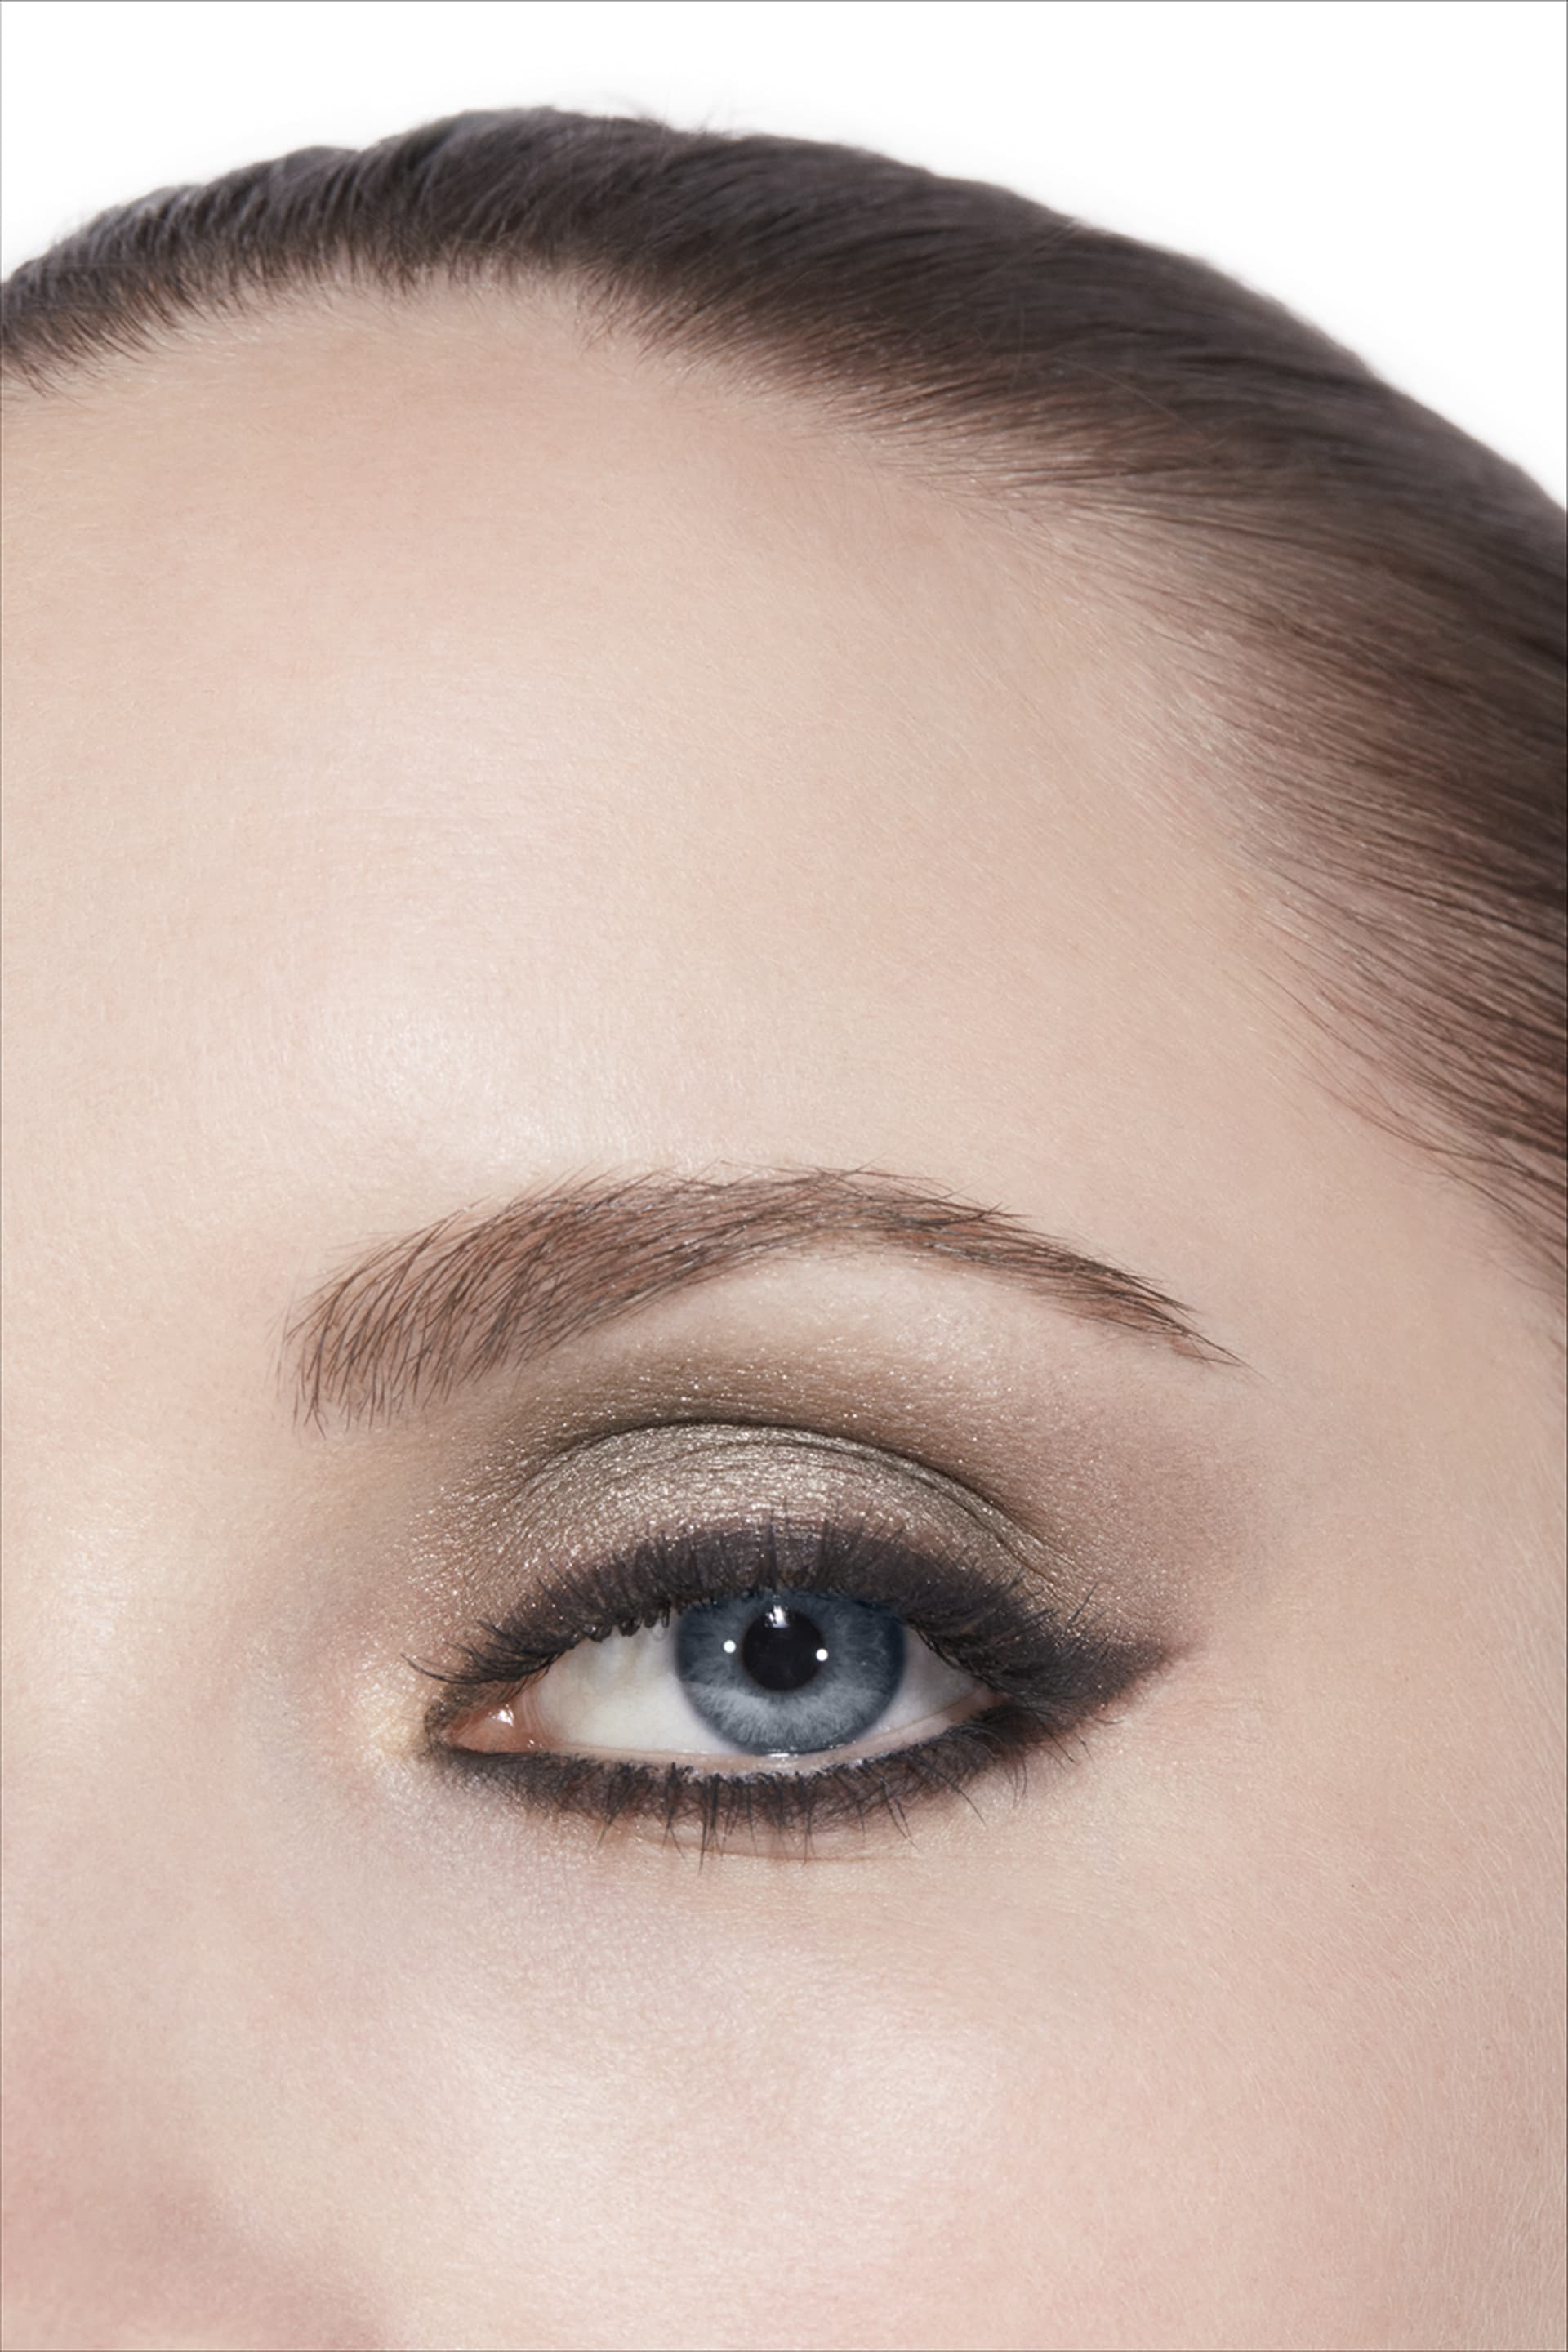 Application makeup visual 3 - LES 4 OMBRES 334 - MODERN GLAMOUR